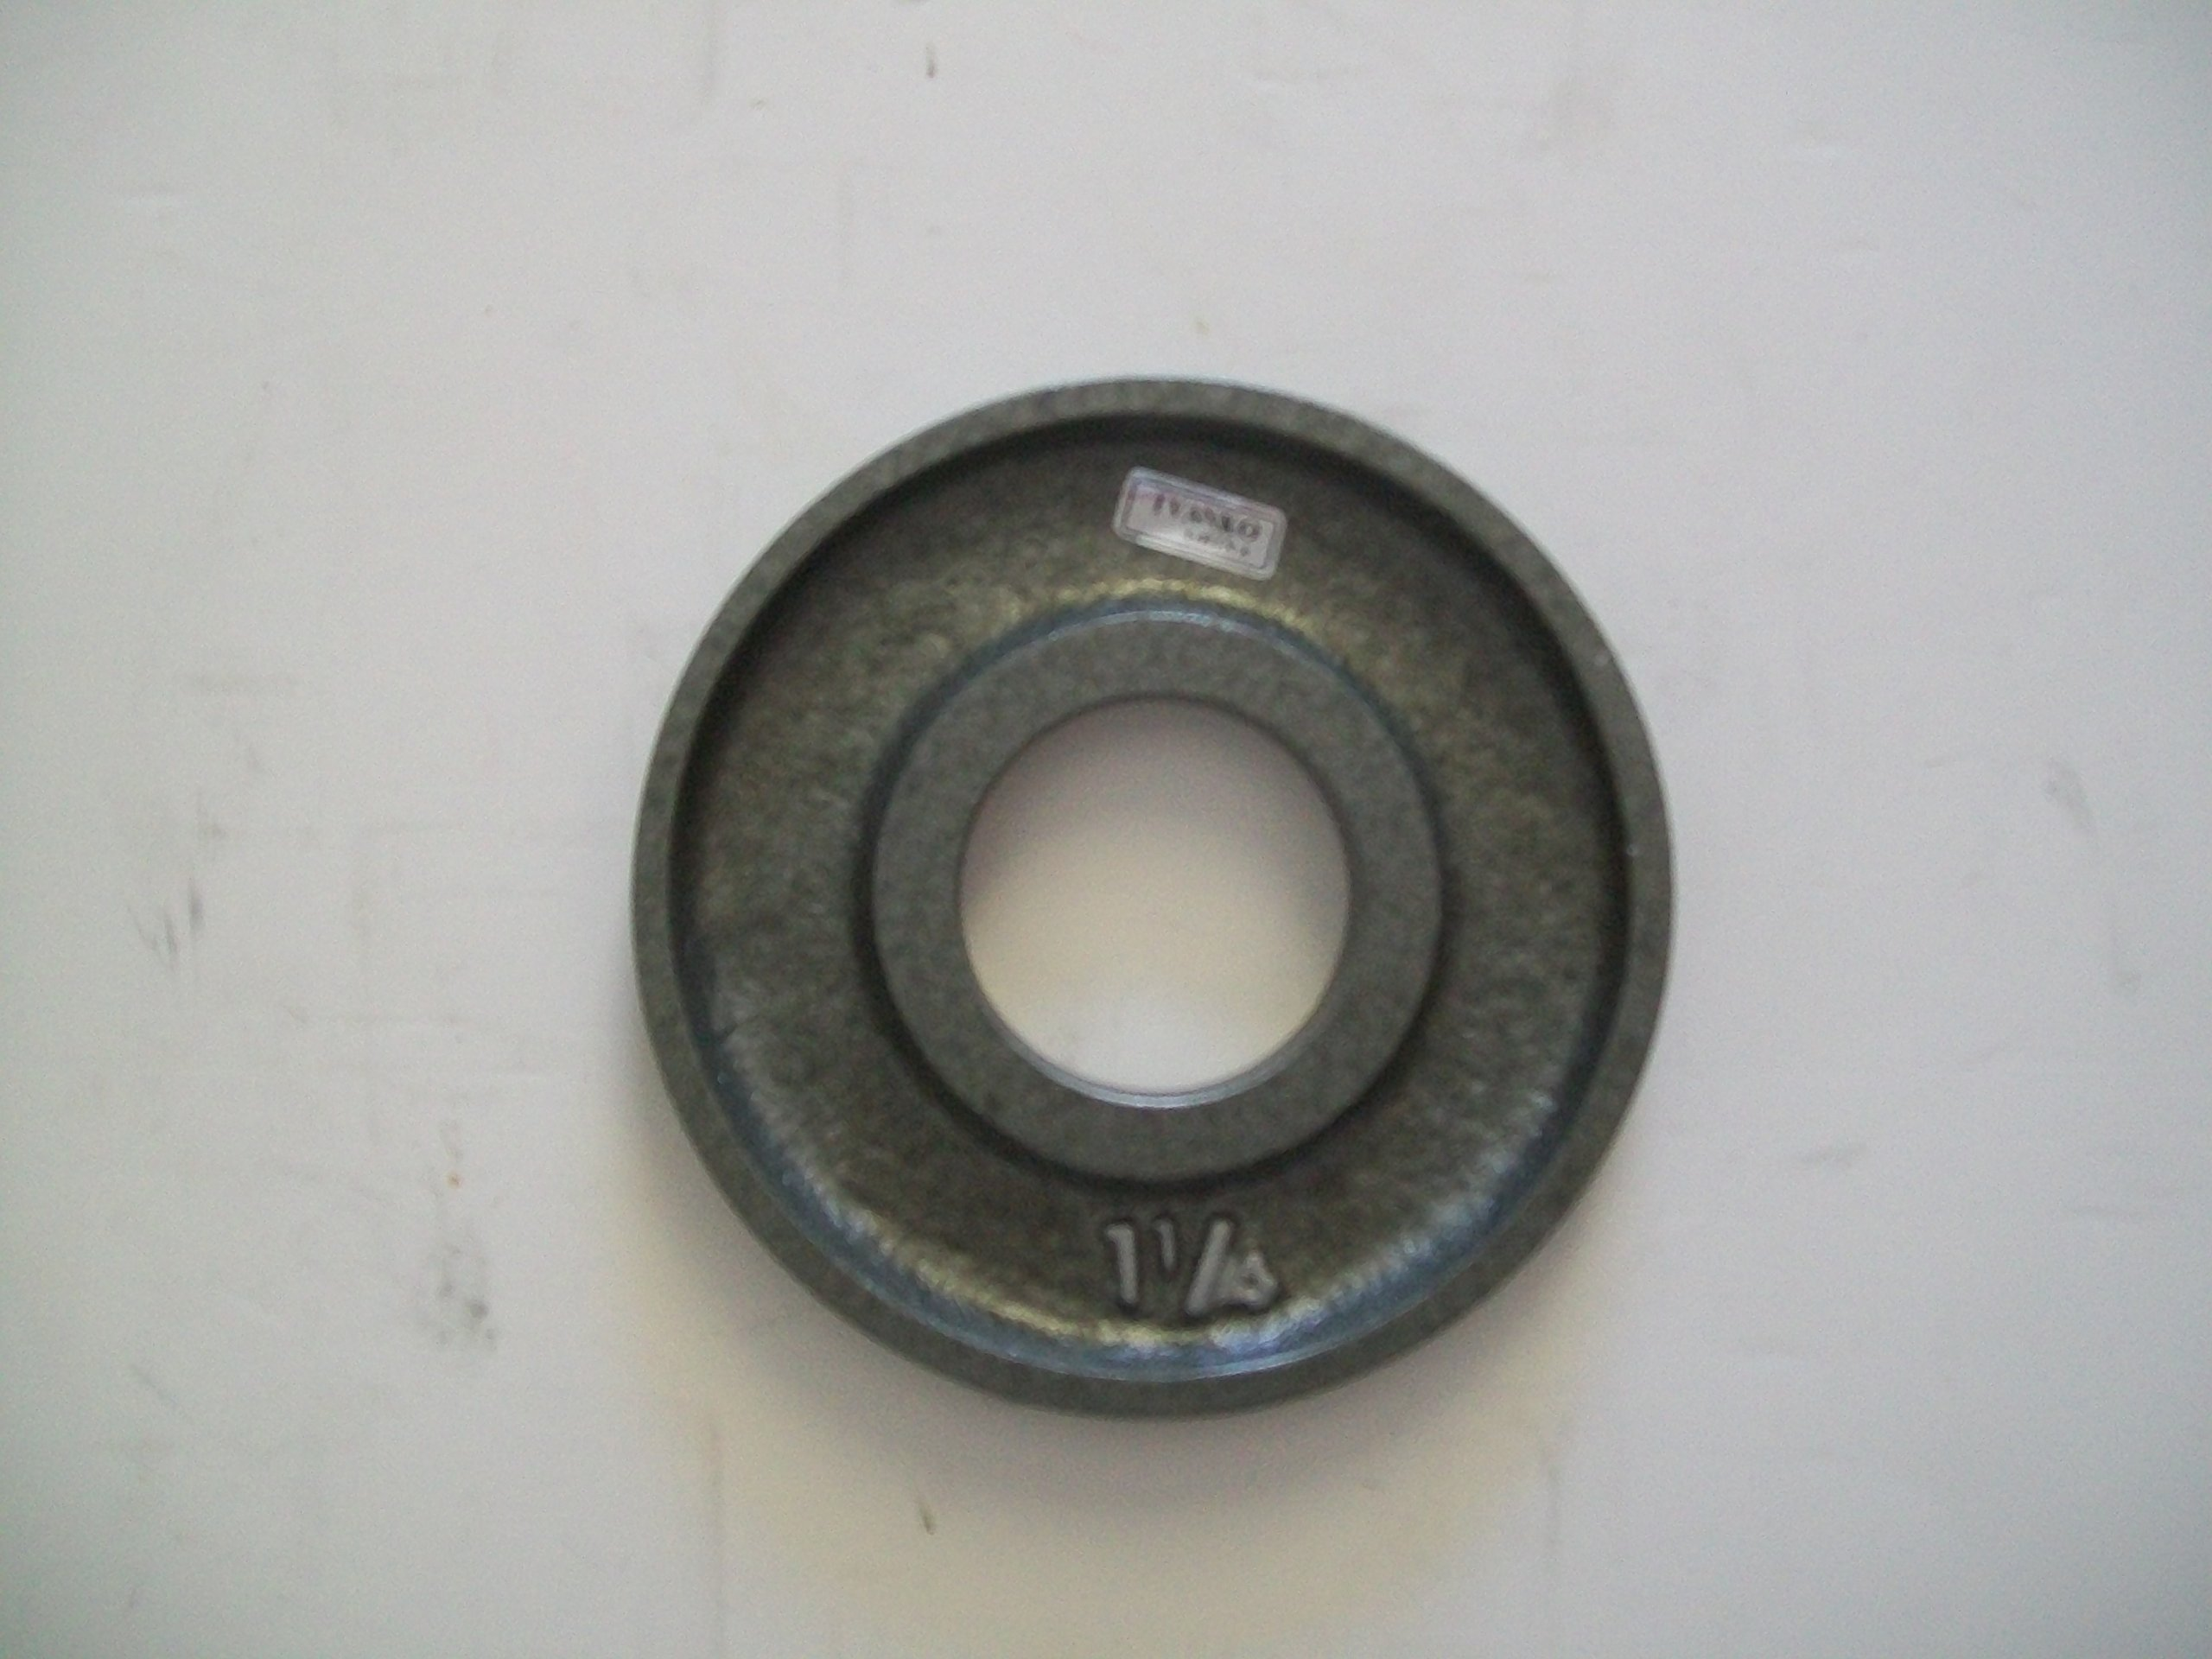 1 1/4 lb. Grey Machined Olympic Plates (Pair)